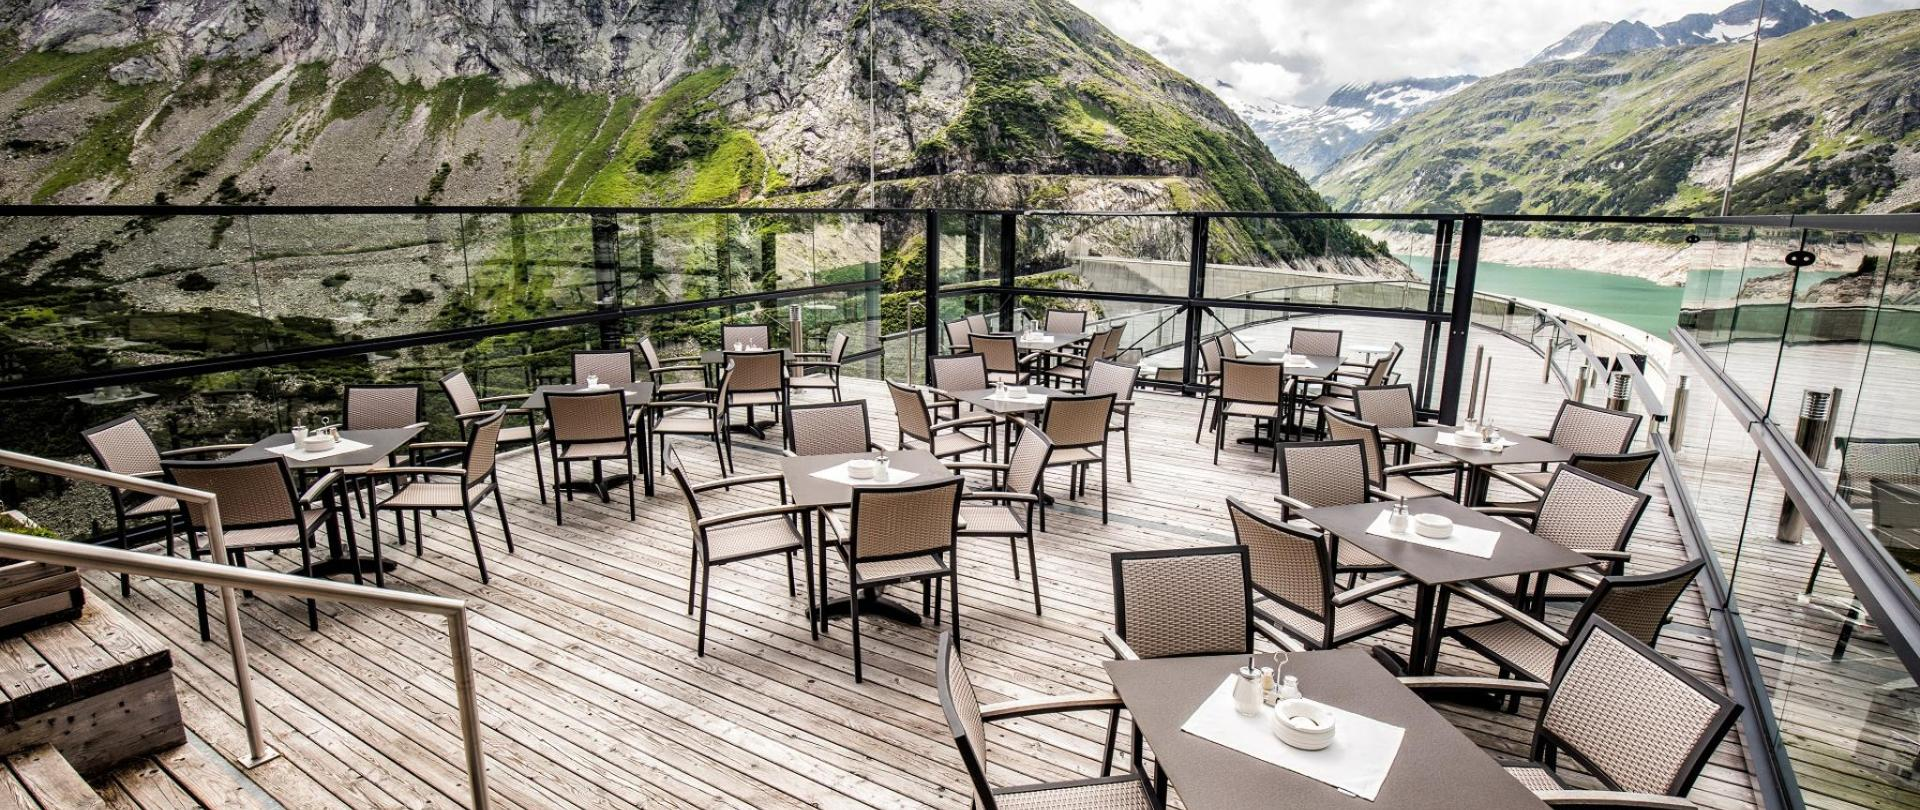 Hochalm restaurant with panoramic terrace